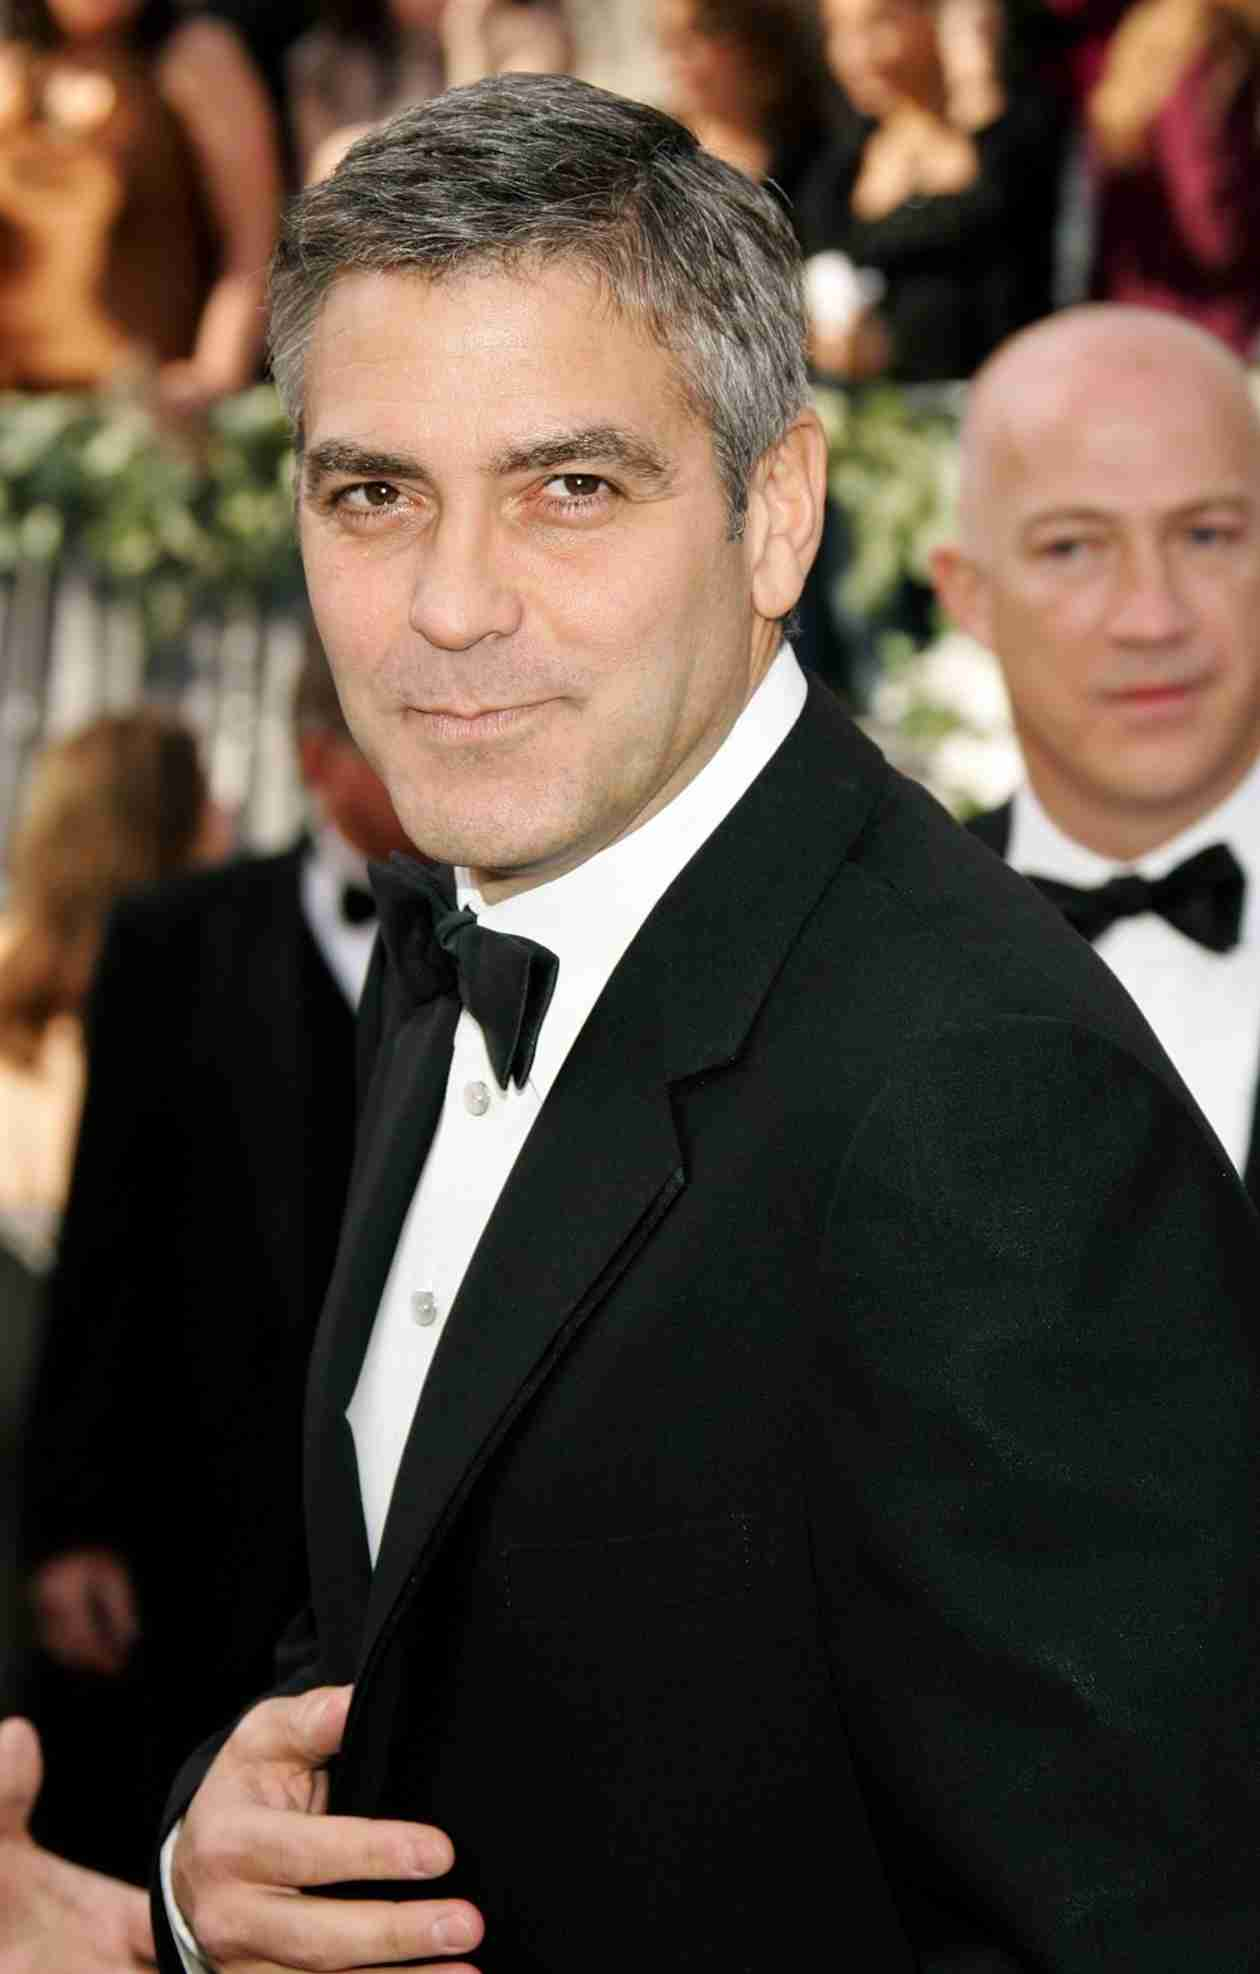 George Clooney Rejects The Daily Mail's Apology For Fabricated Wedding Tensions Story (VIDEO)